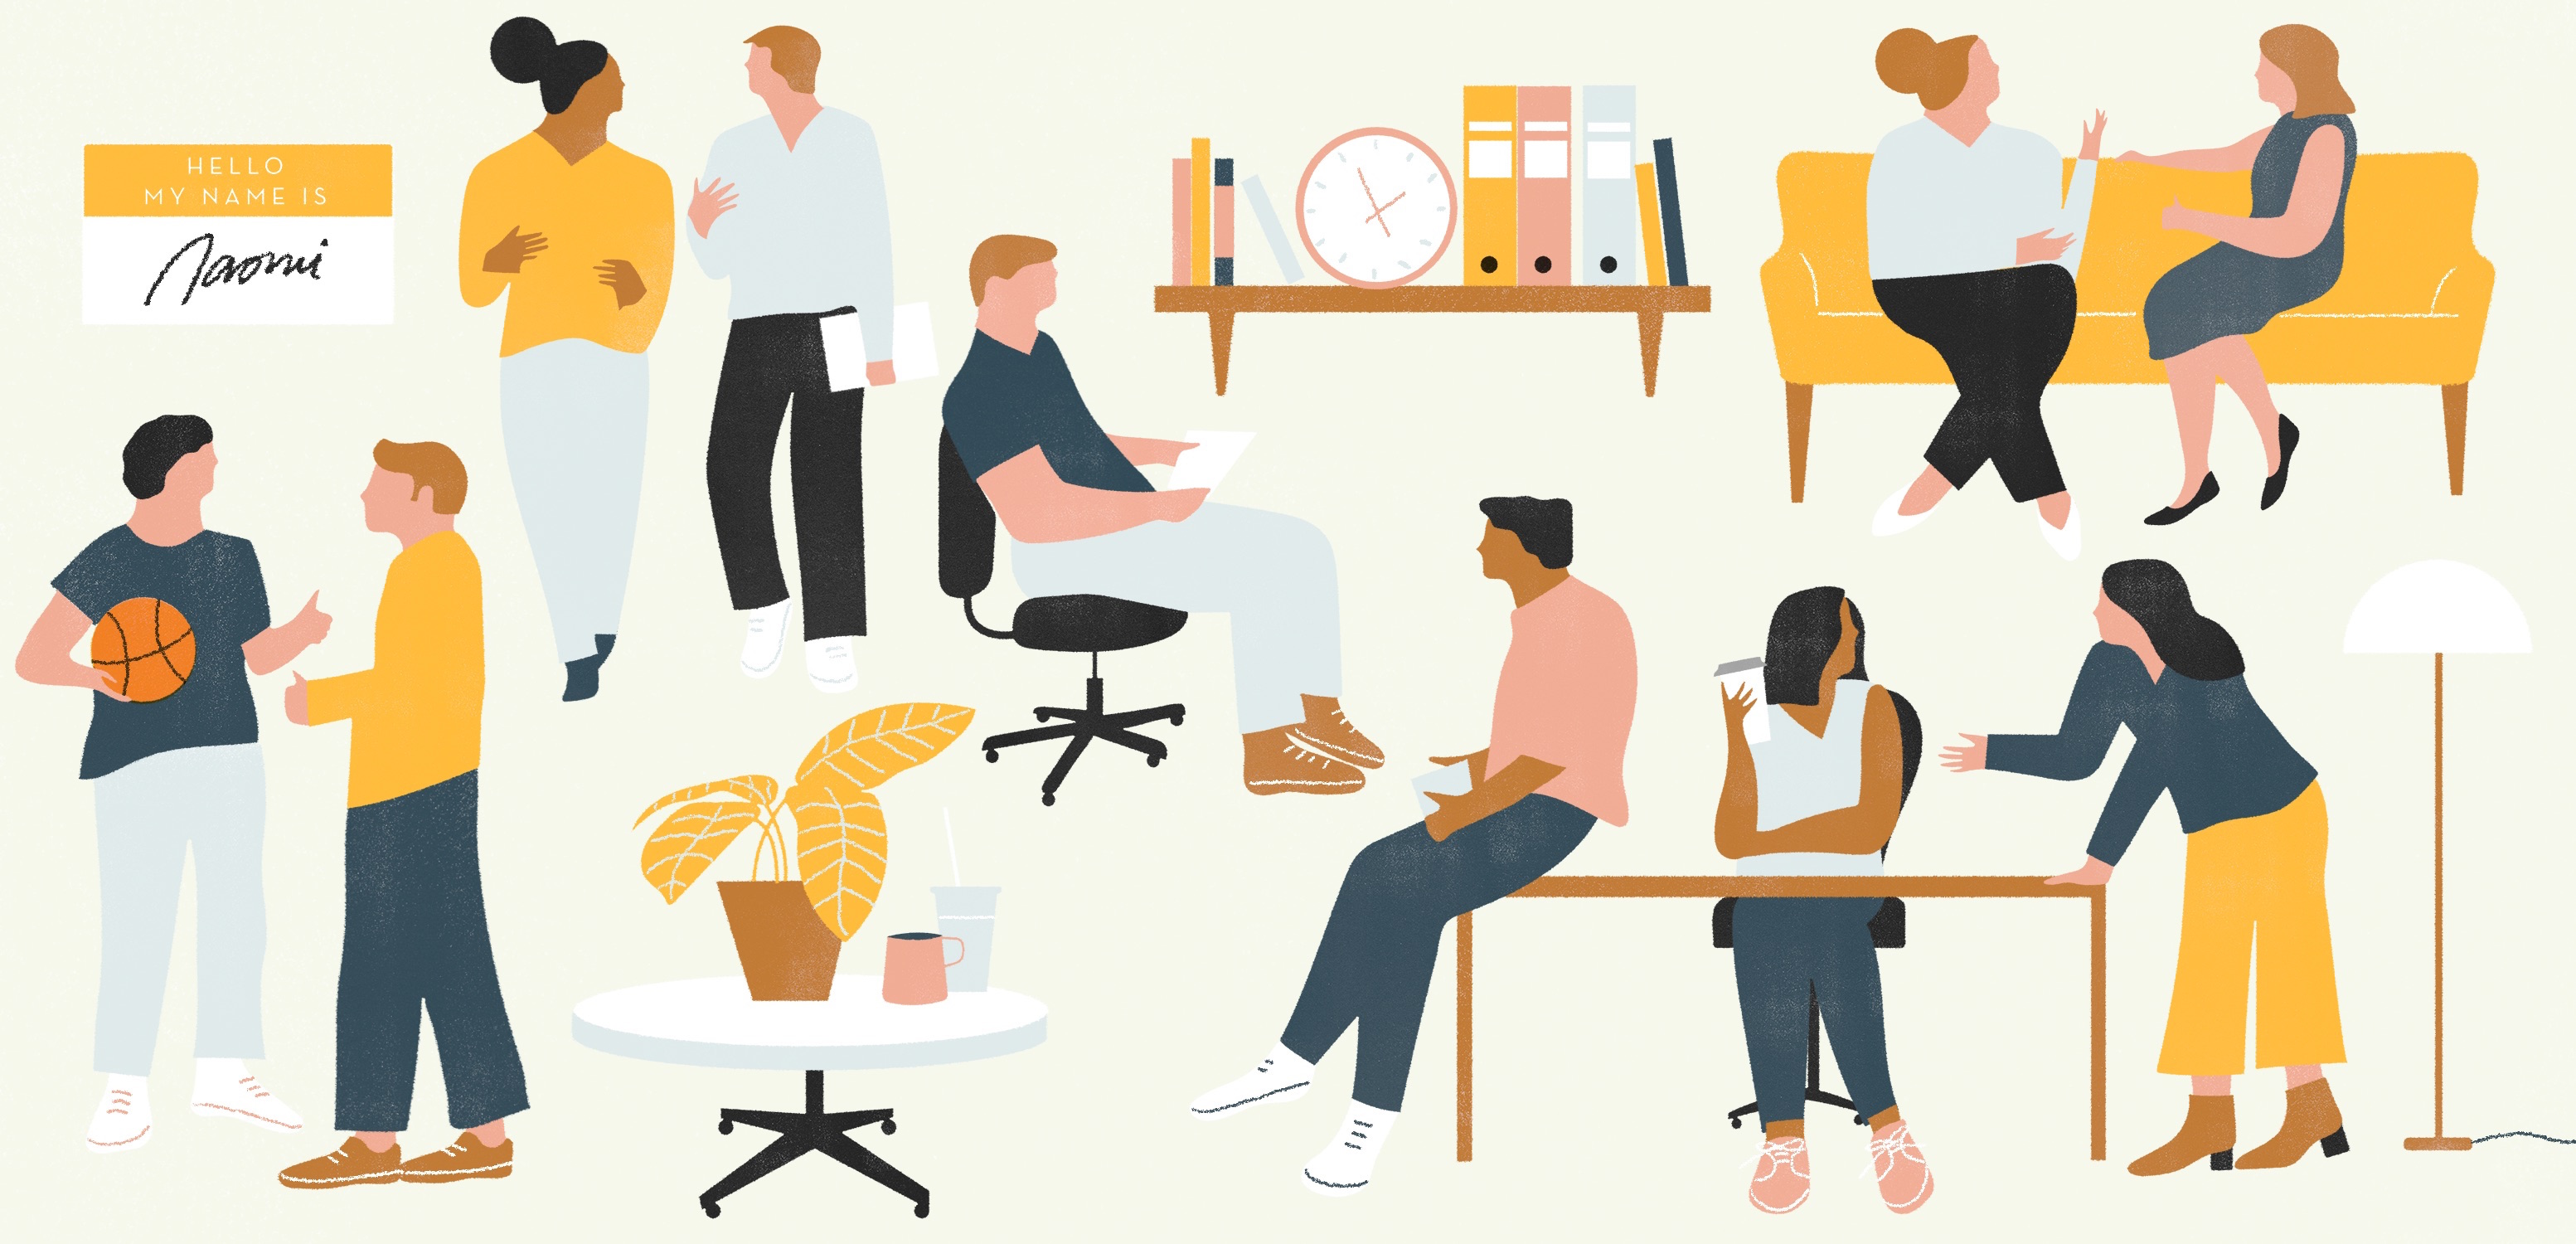 How to build workplace connections that help us succeed - Ideas